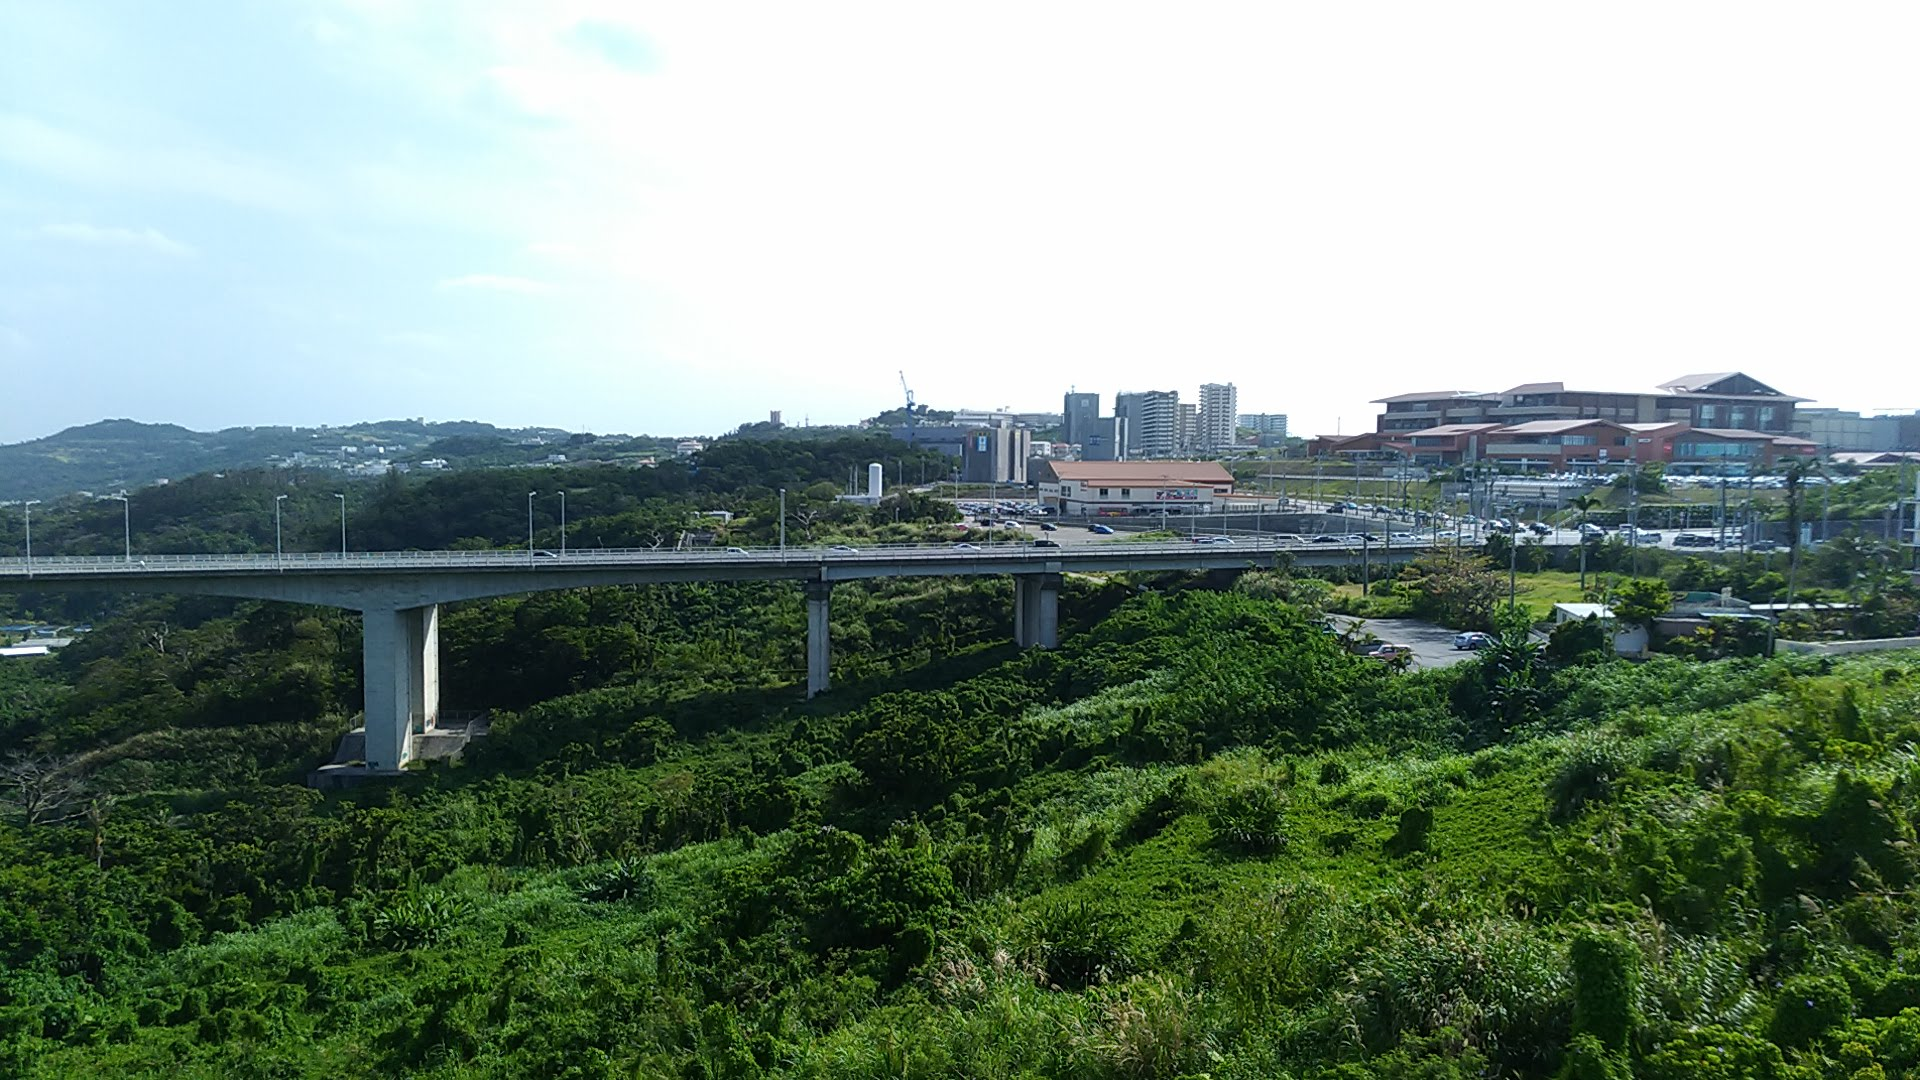 Rycome Okinawa seen from the terrace